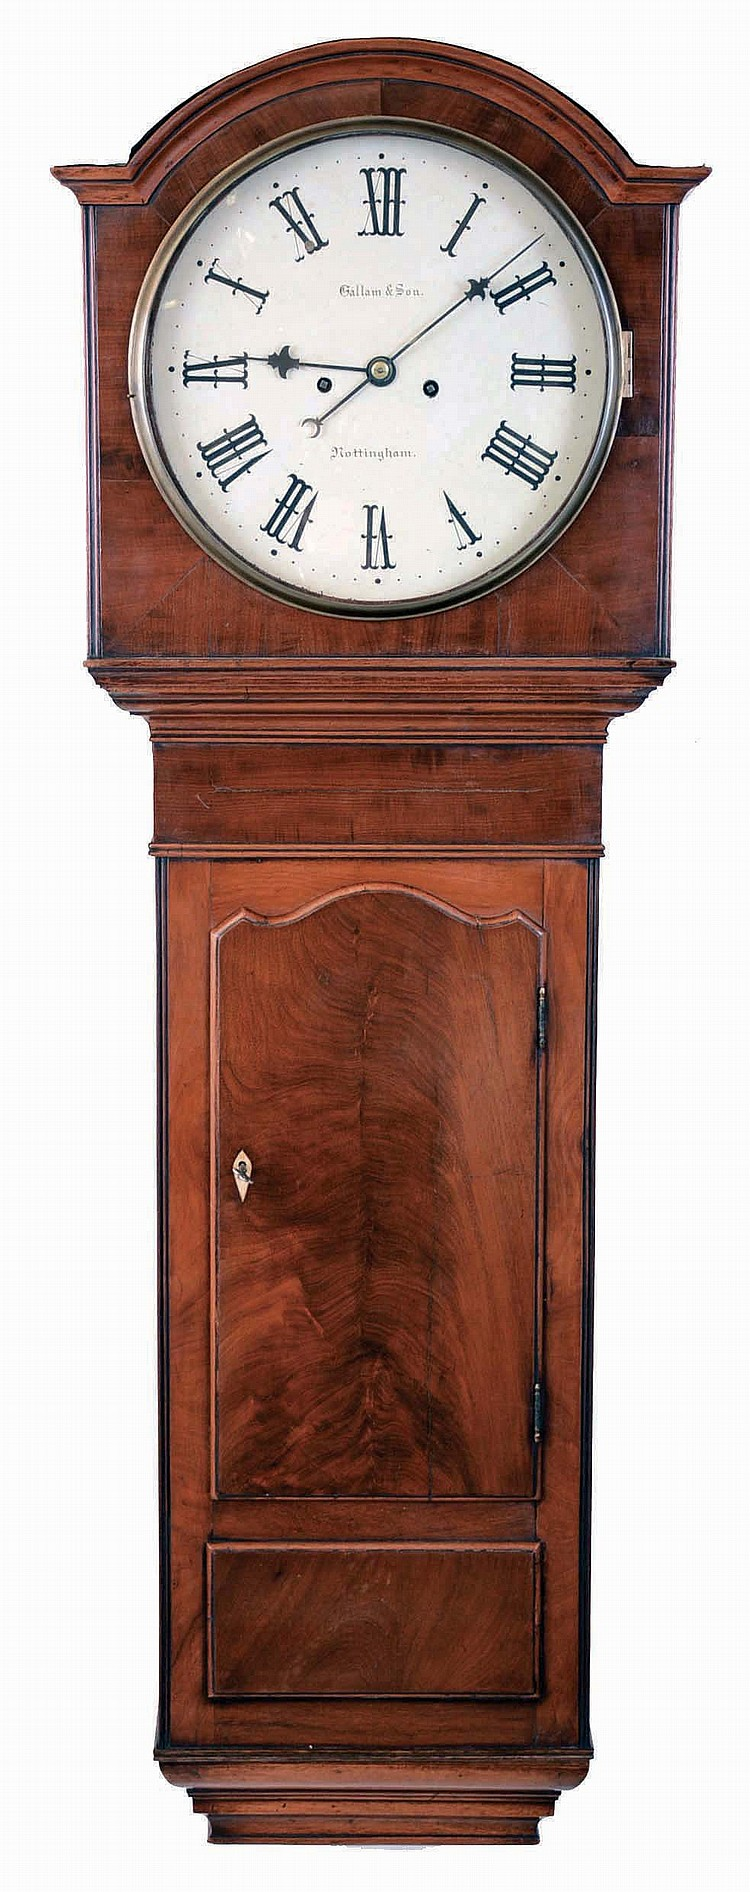 Gallam & Sons, Nottingham, England, tavern wall clock, 8 days, time and bell strike, weight driven movement in a mahogany veneer case with crotch mahogany door and painted metal dial